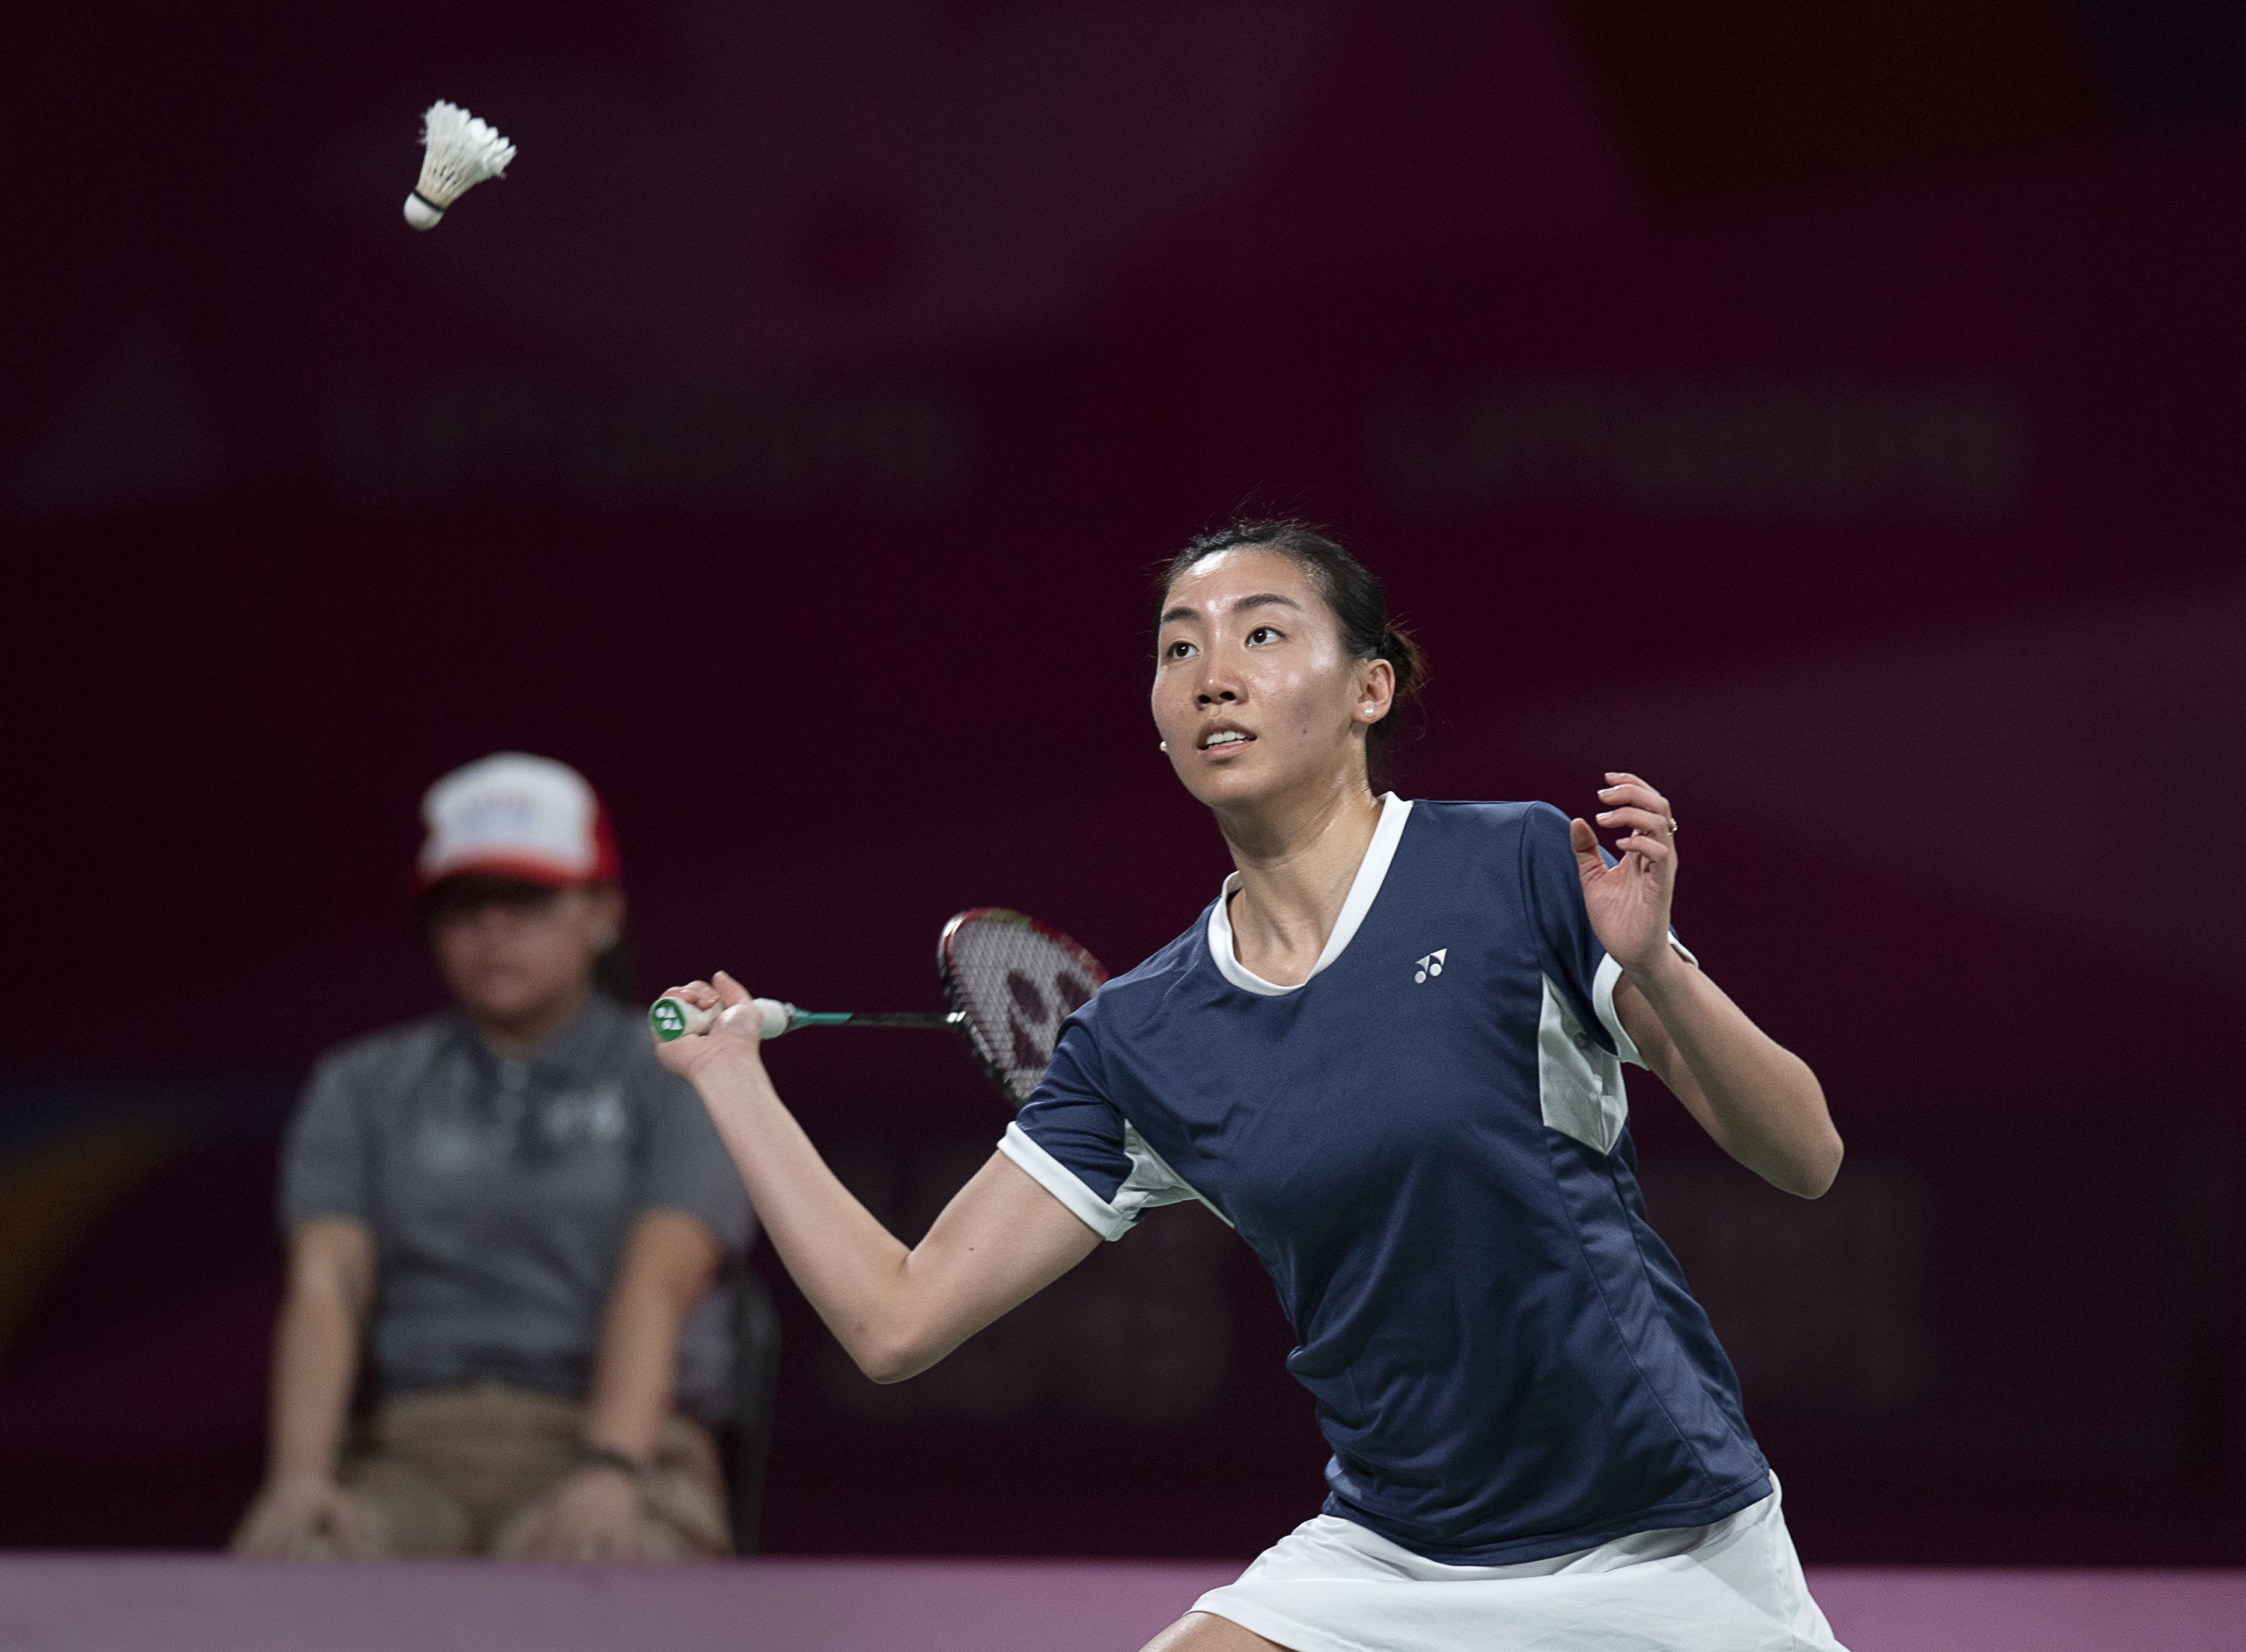 Michelle Li gets ready to return a shot at the Pan Am Games in Lima, Peru.